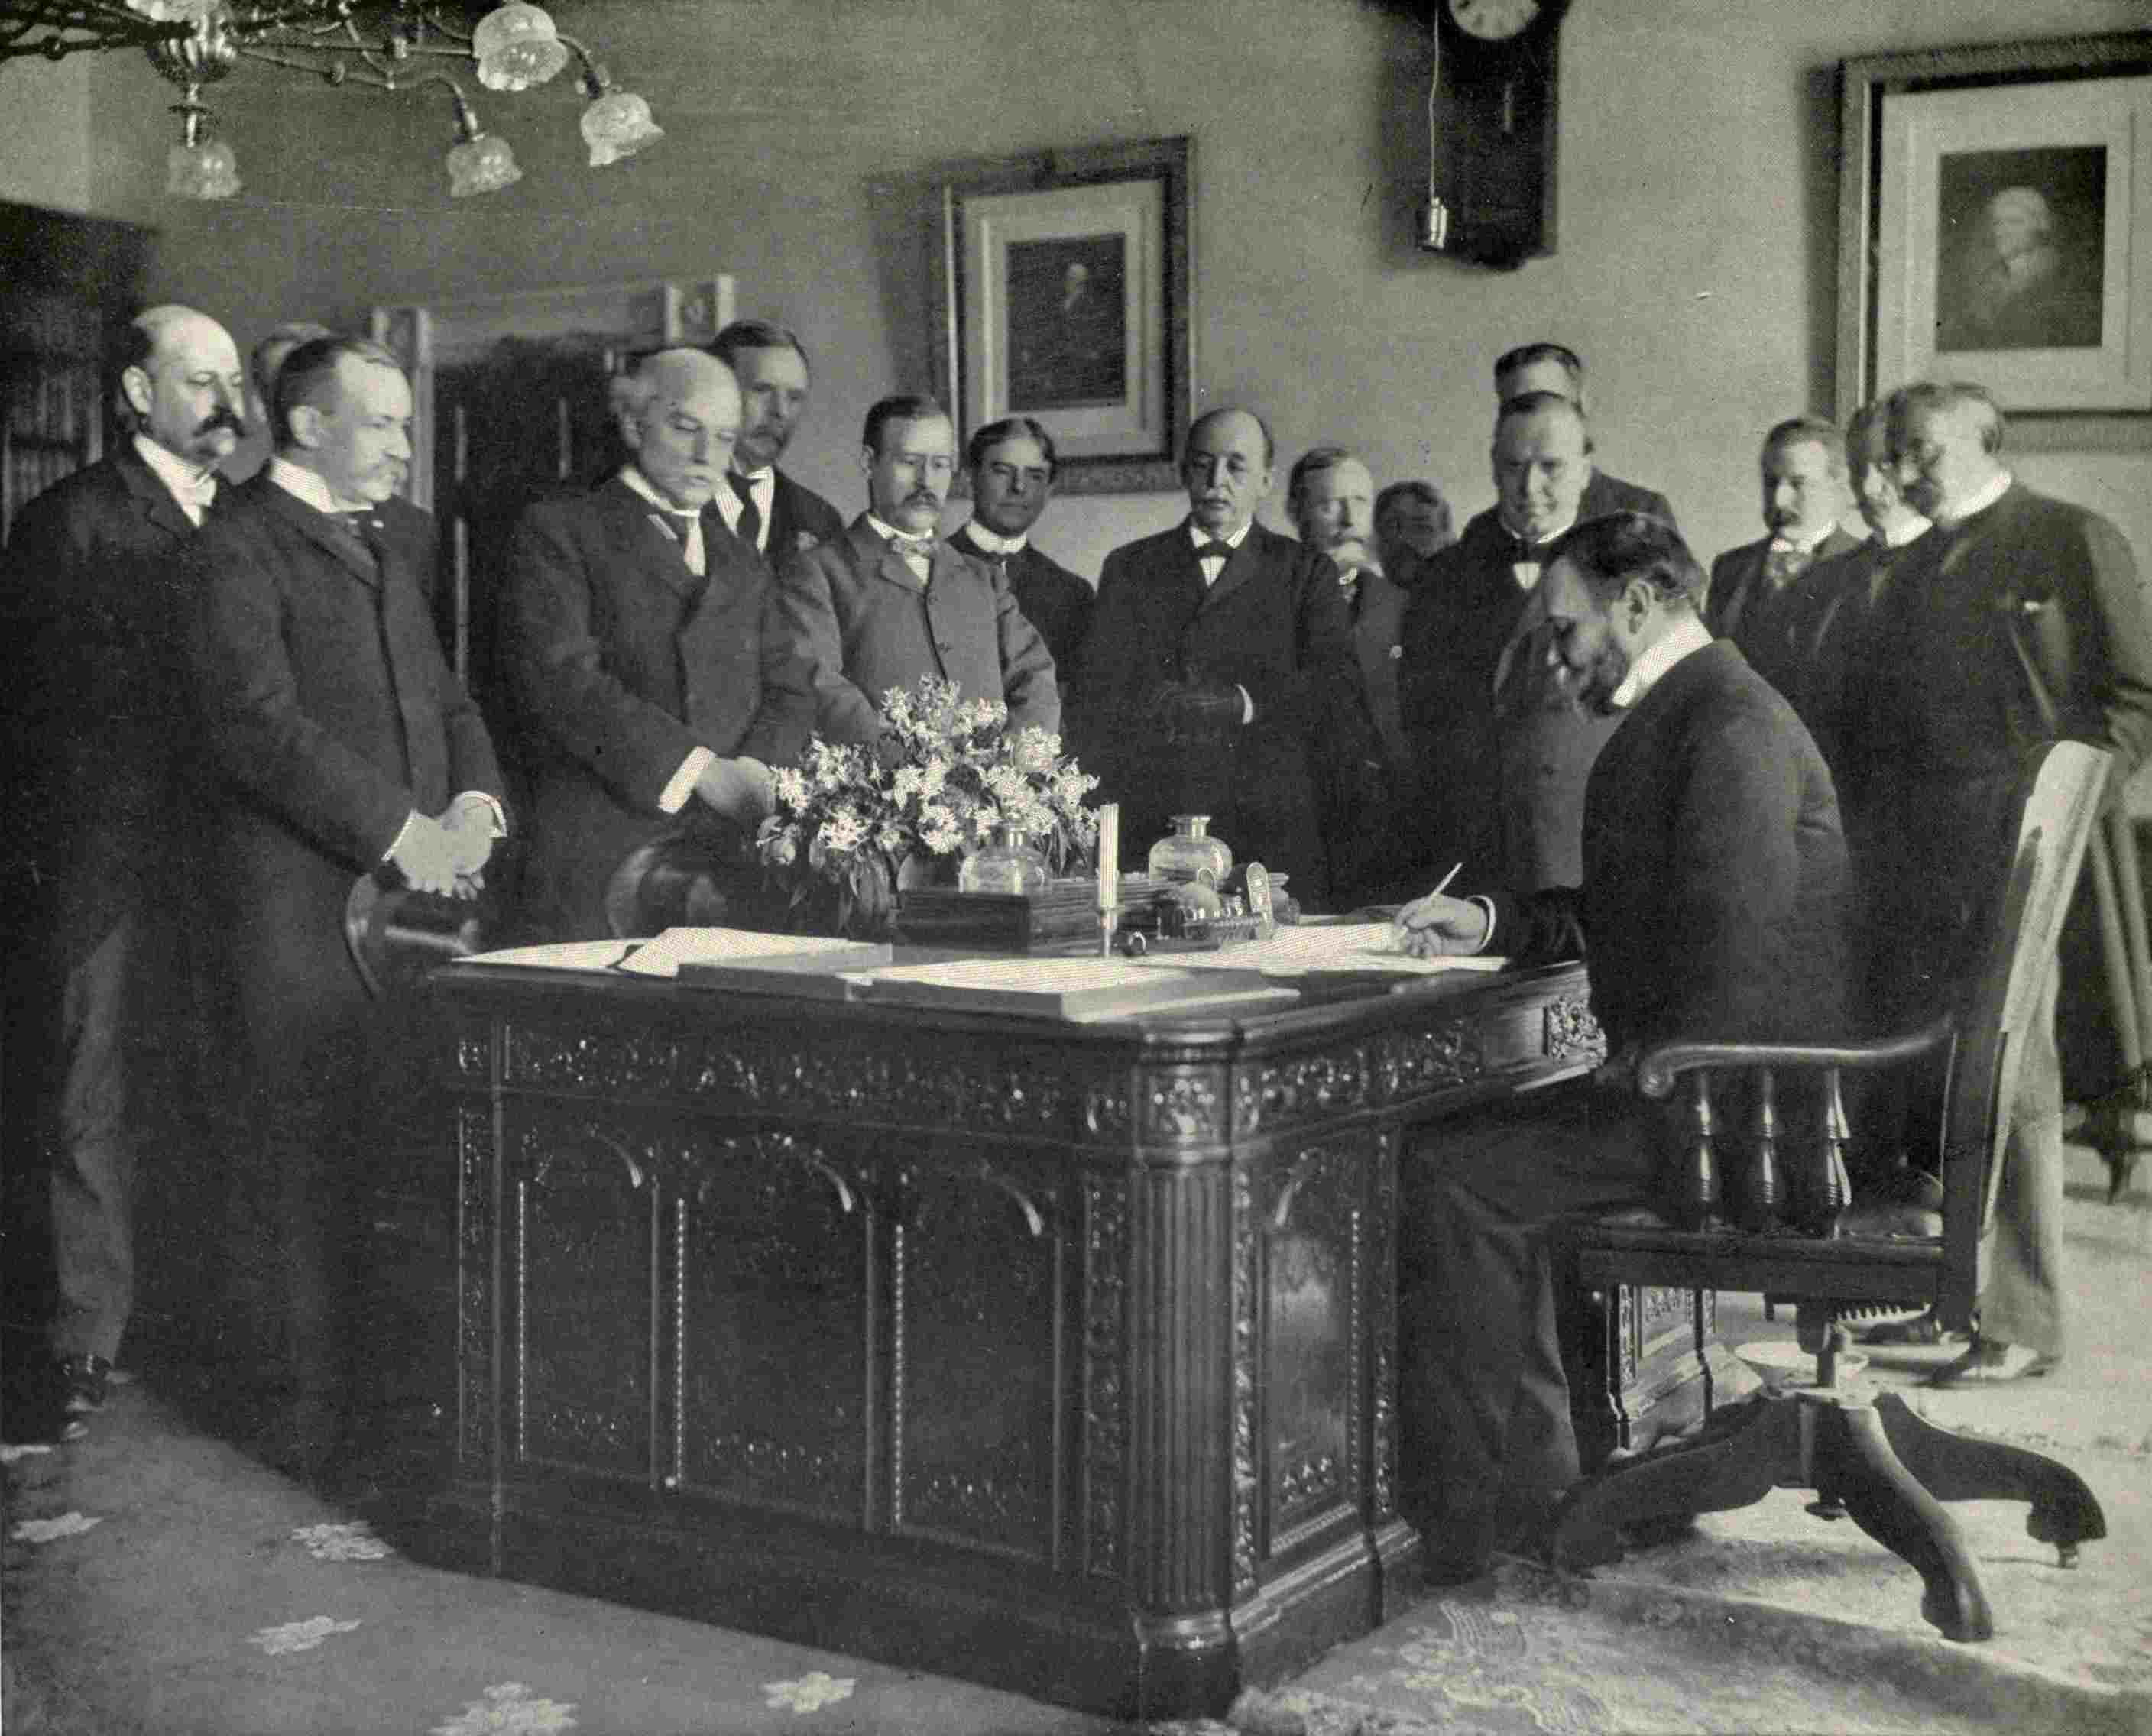 John Hay, Secretary of State, signing the memorandum of ratification for the Treaty of Paris that ended the Spanish American war on behalf of the United States